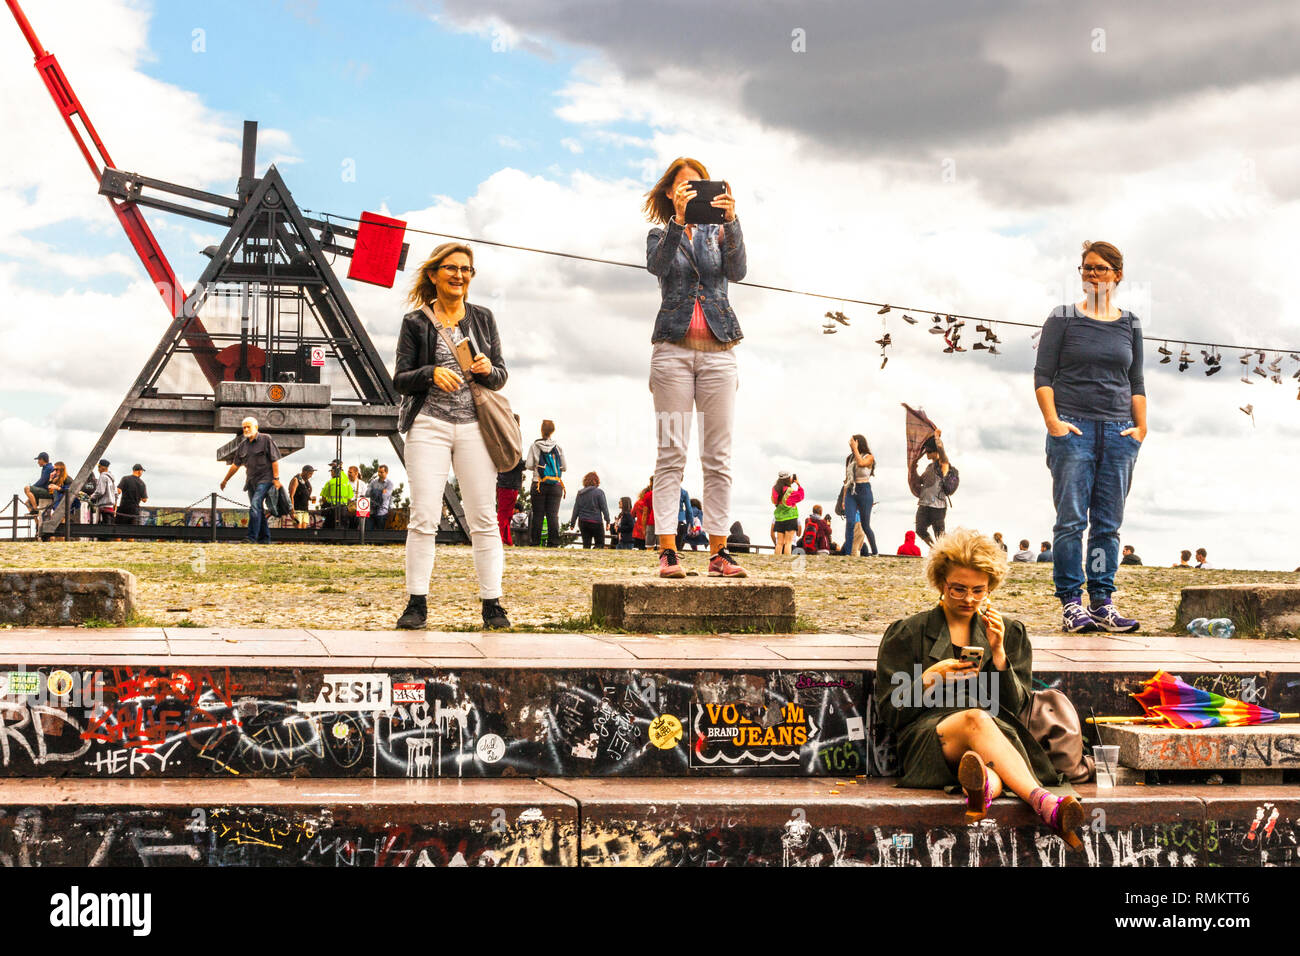 People at Prague Metronome, Prague Letna Park Former Place of Stalin's Monument, Czech Republic - Stock Image